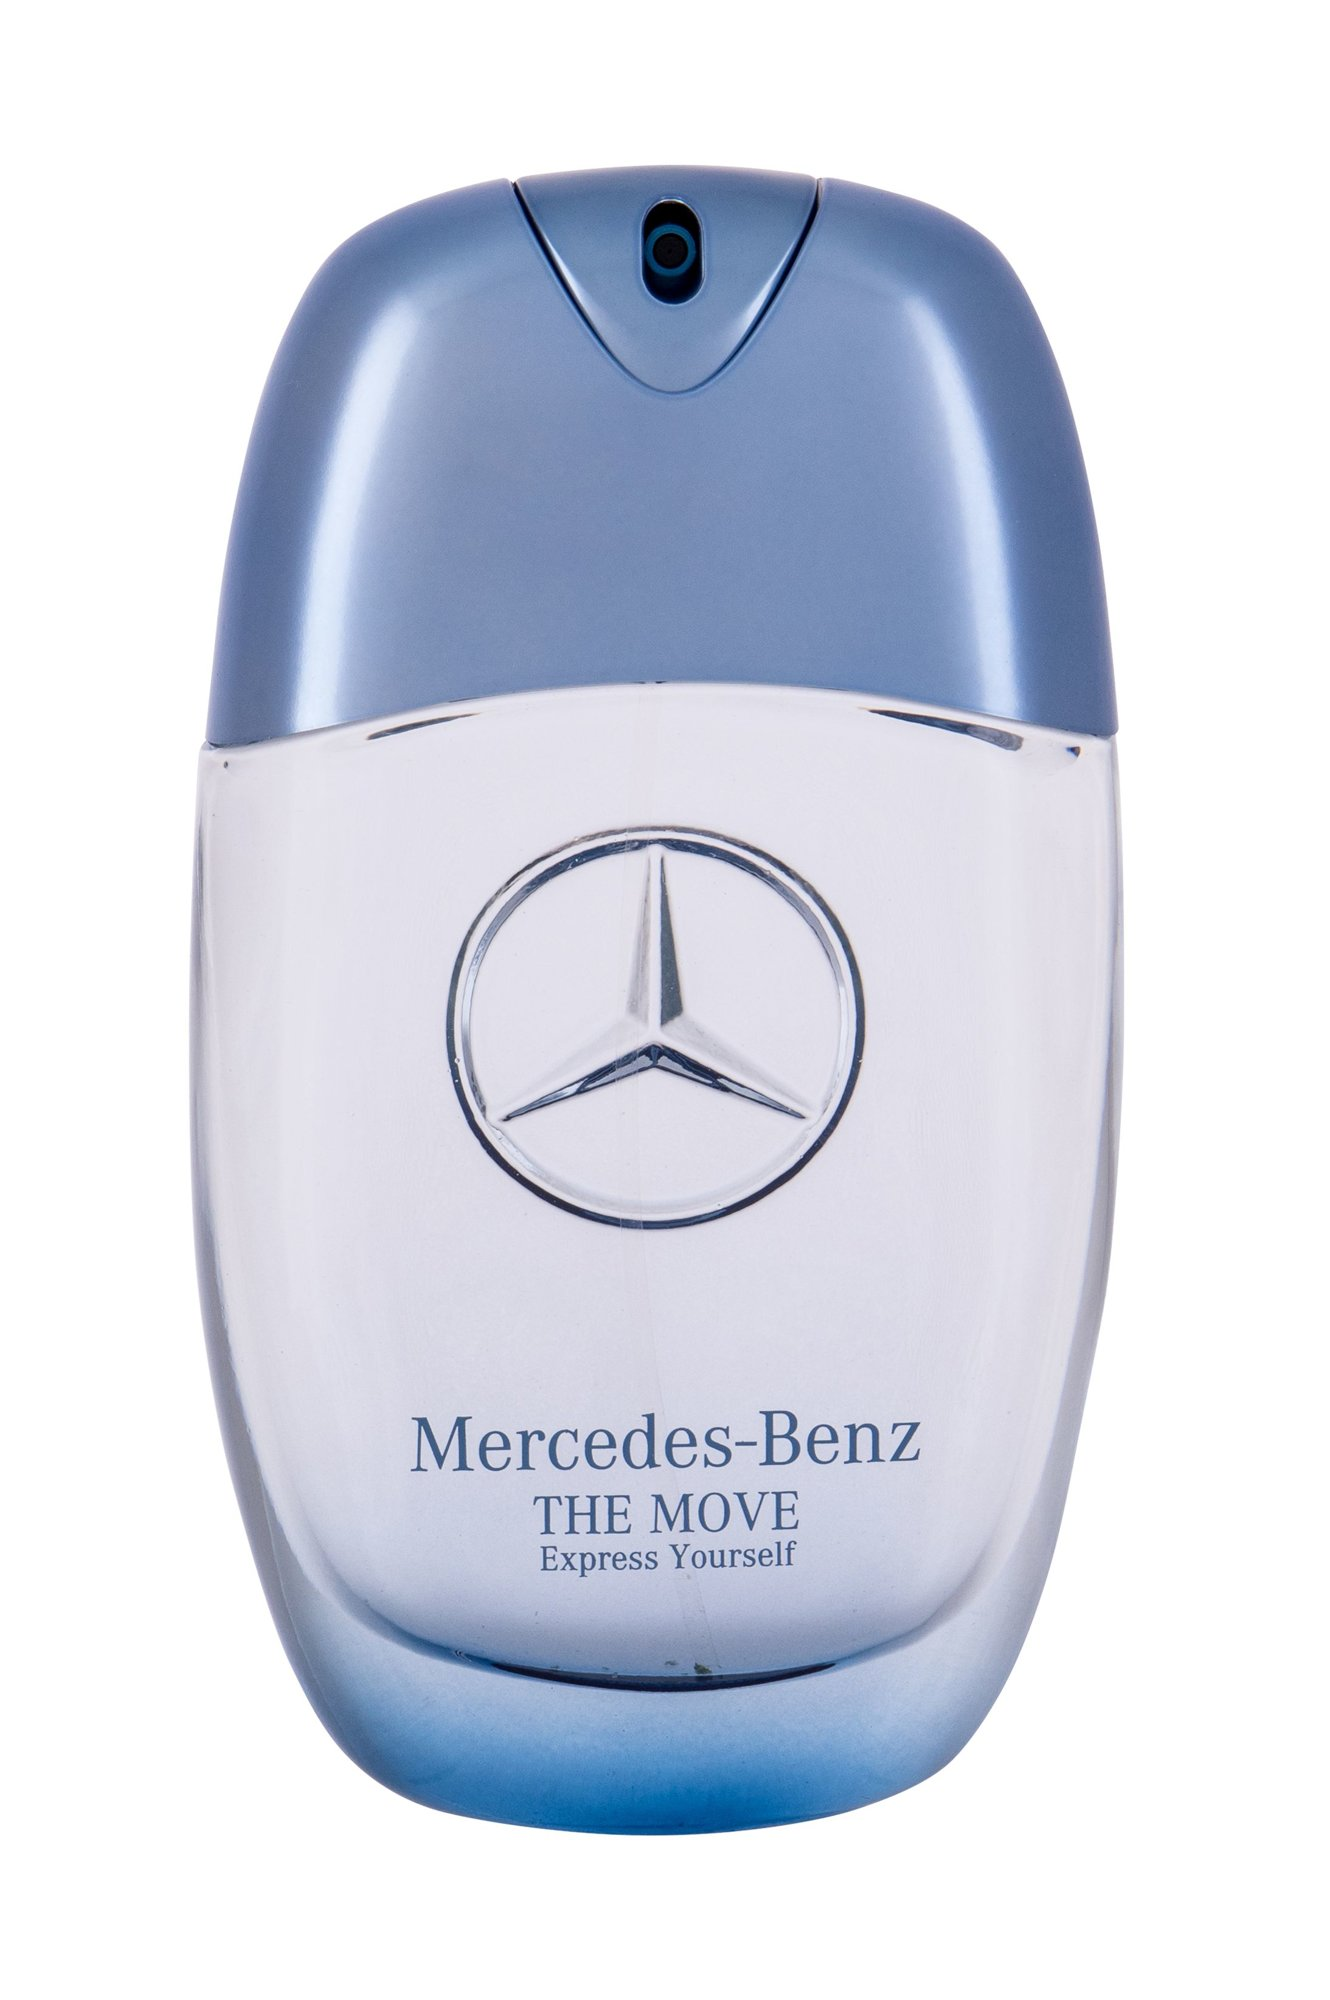 Mercedes-Benz The Move Express Yourself, edt 100ml